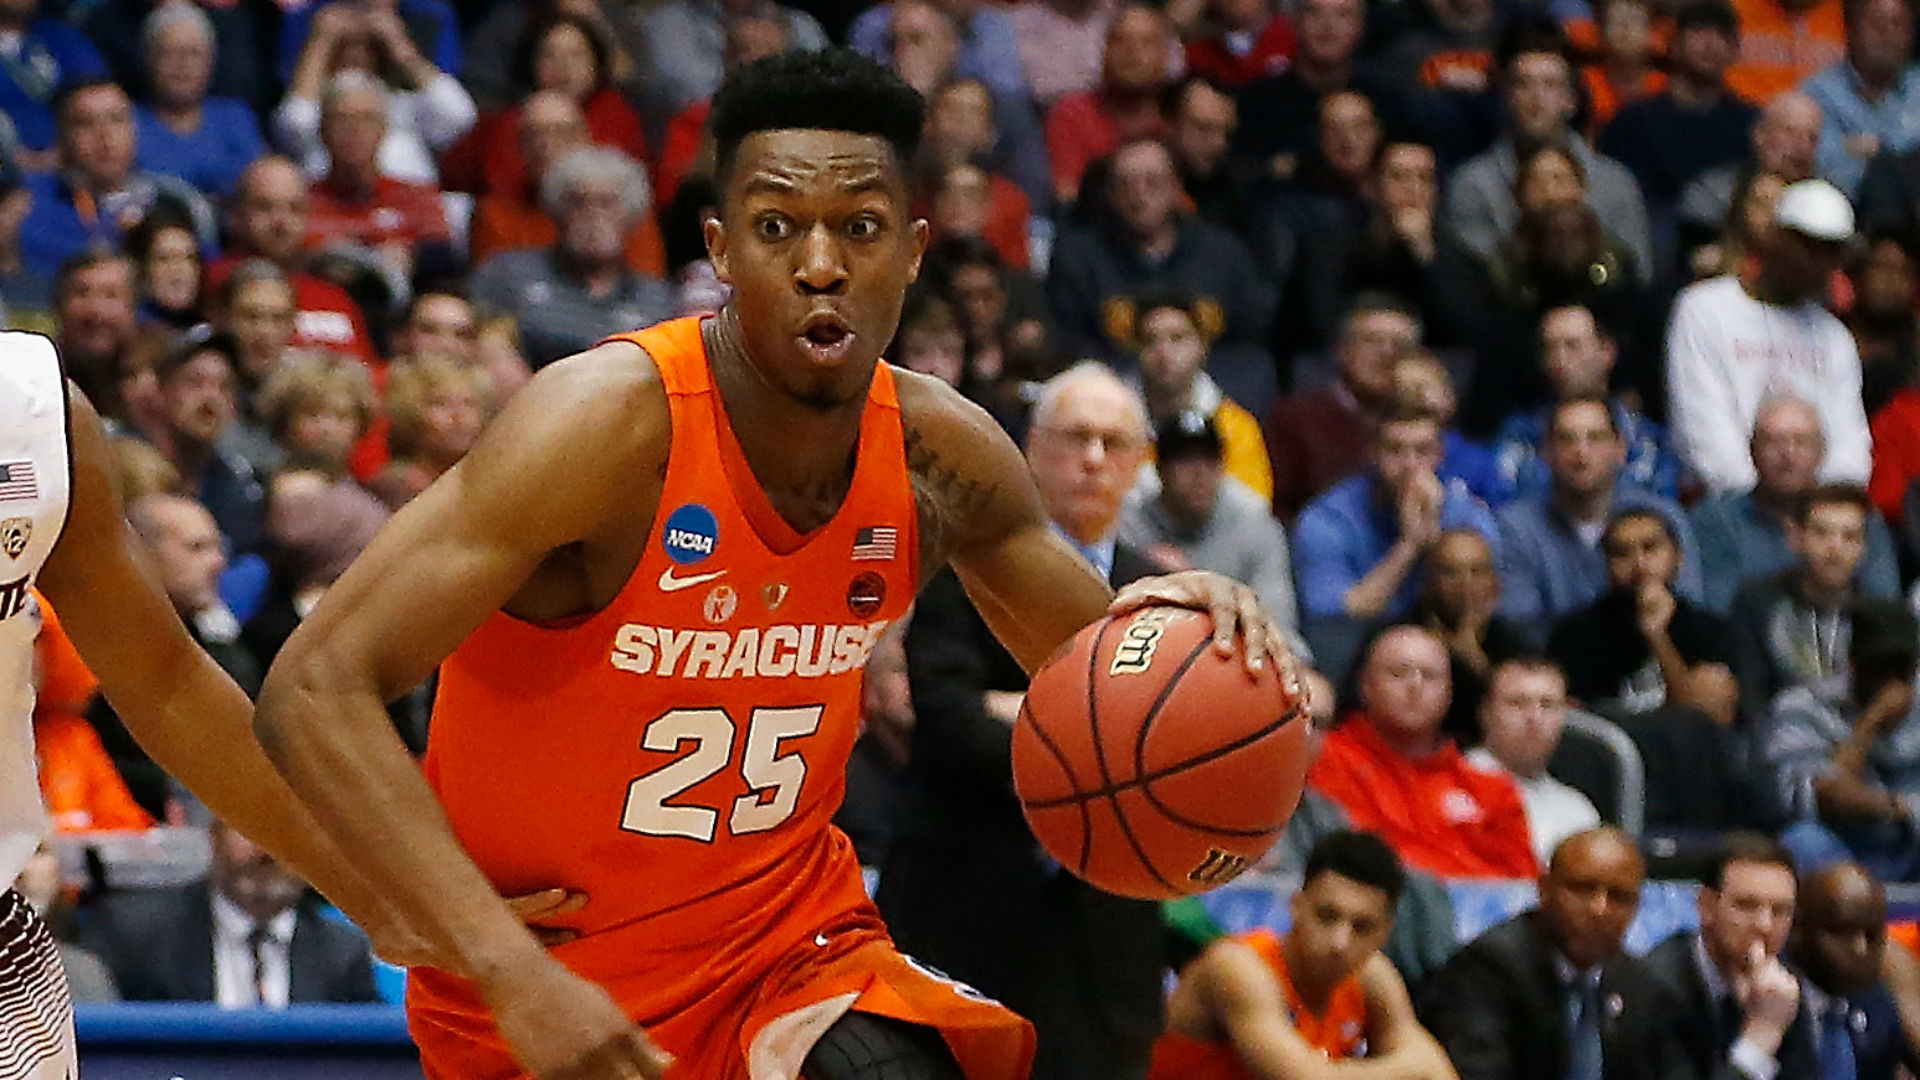 Canada's Brissett leads Syracuse past ASU in First Four action — March Madness